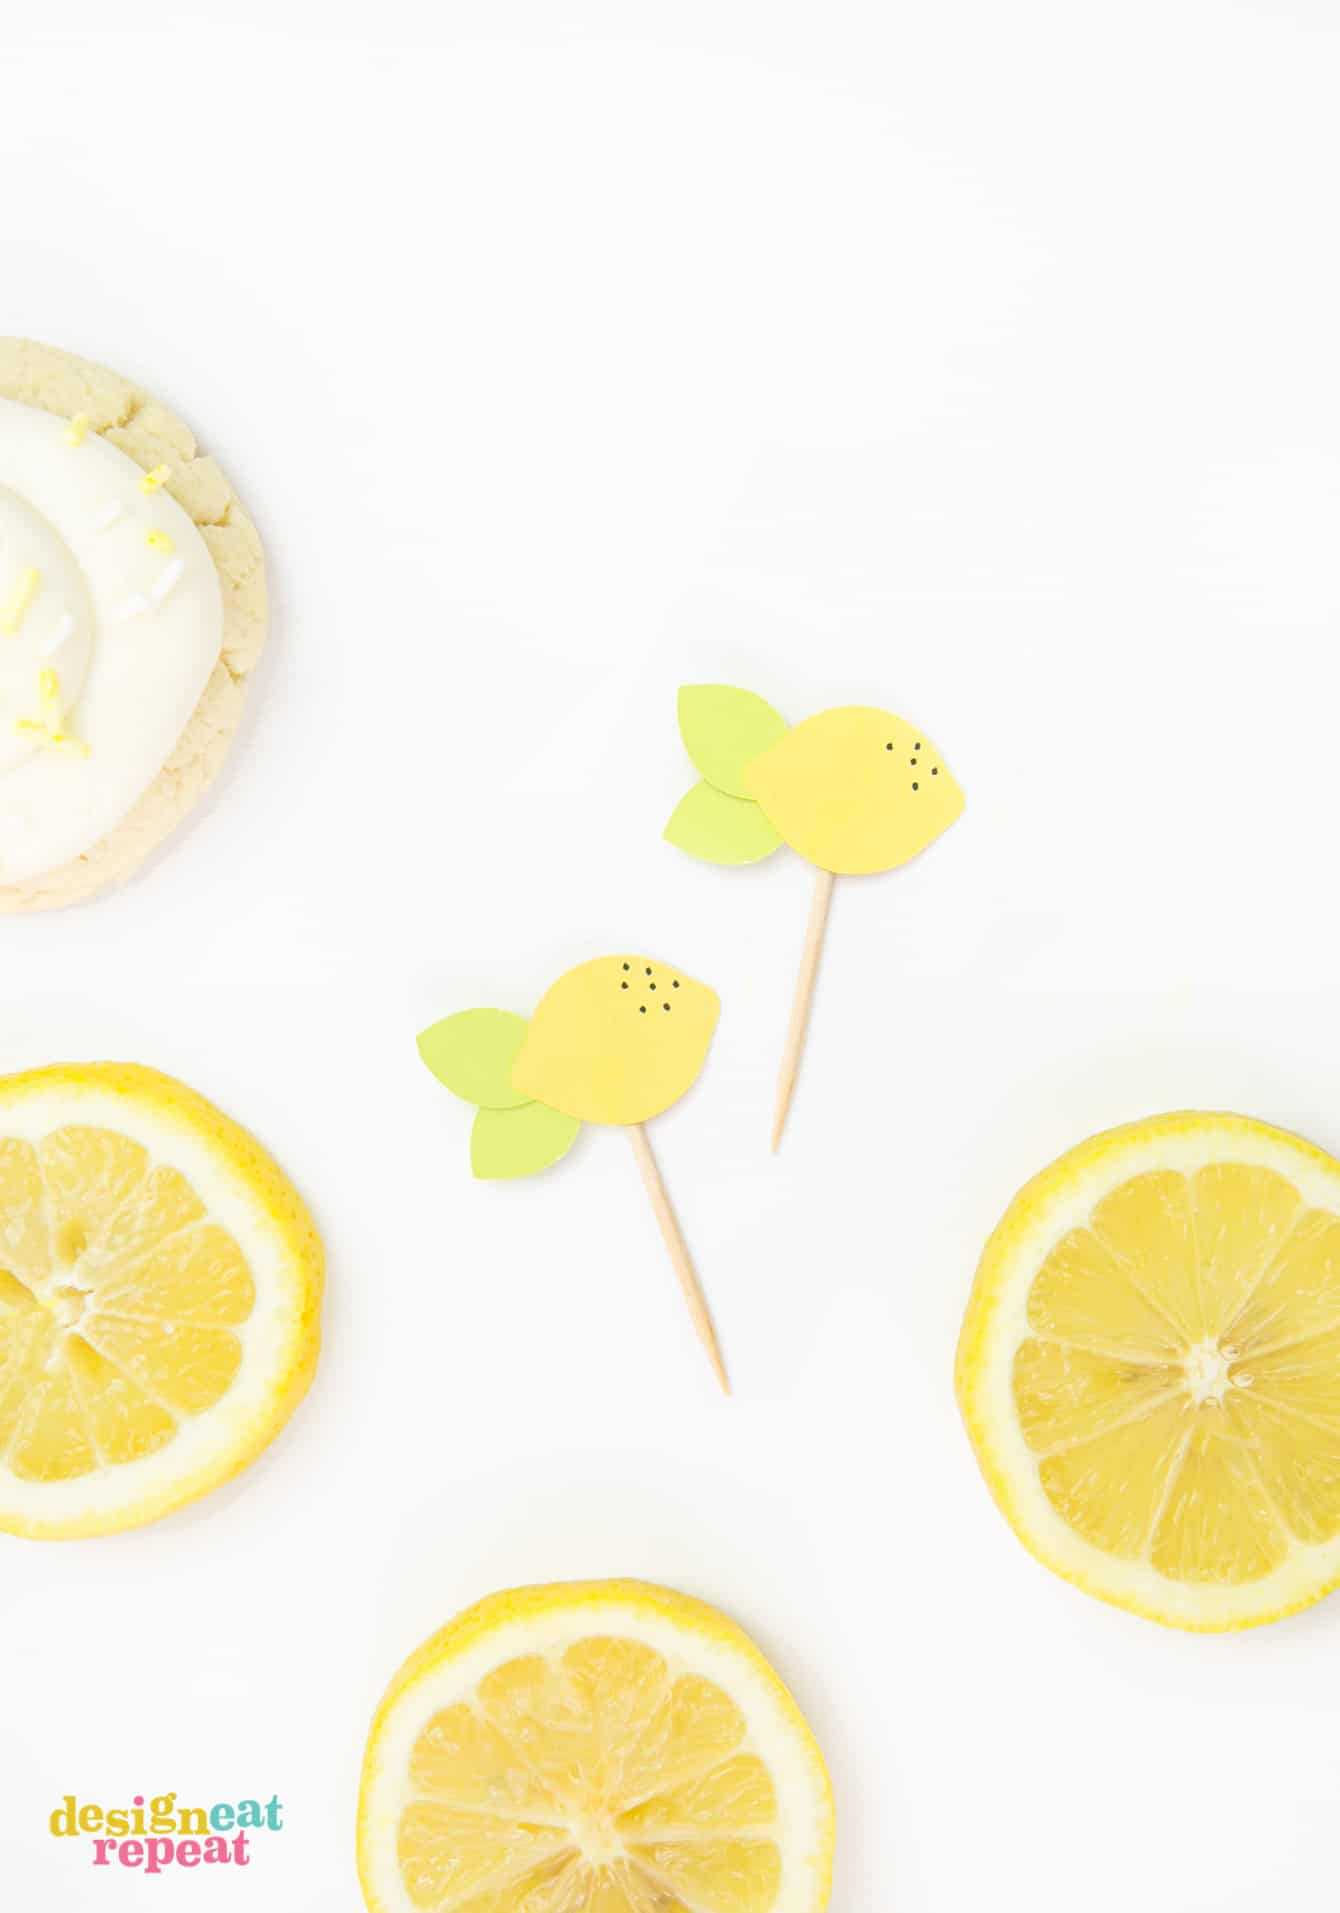 Lemon toppers on toothpicks to decorate thick lemon sugar cookies.